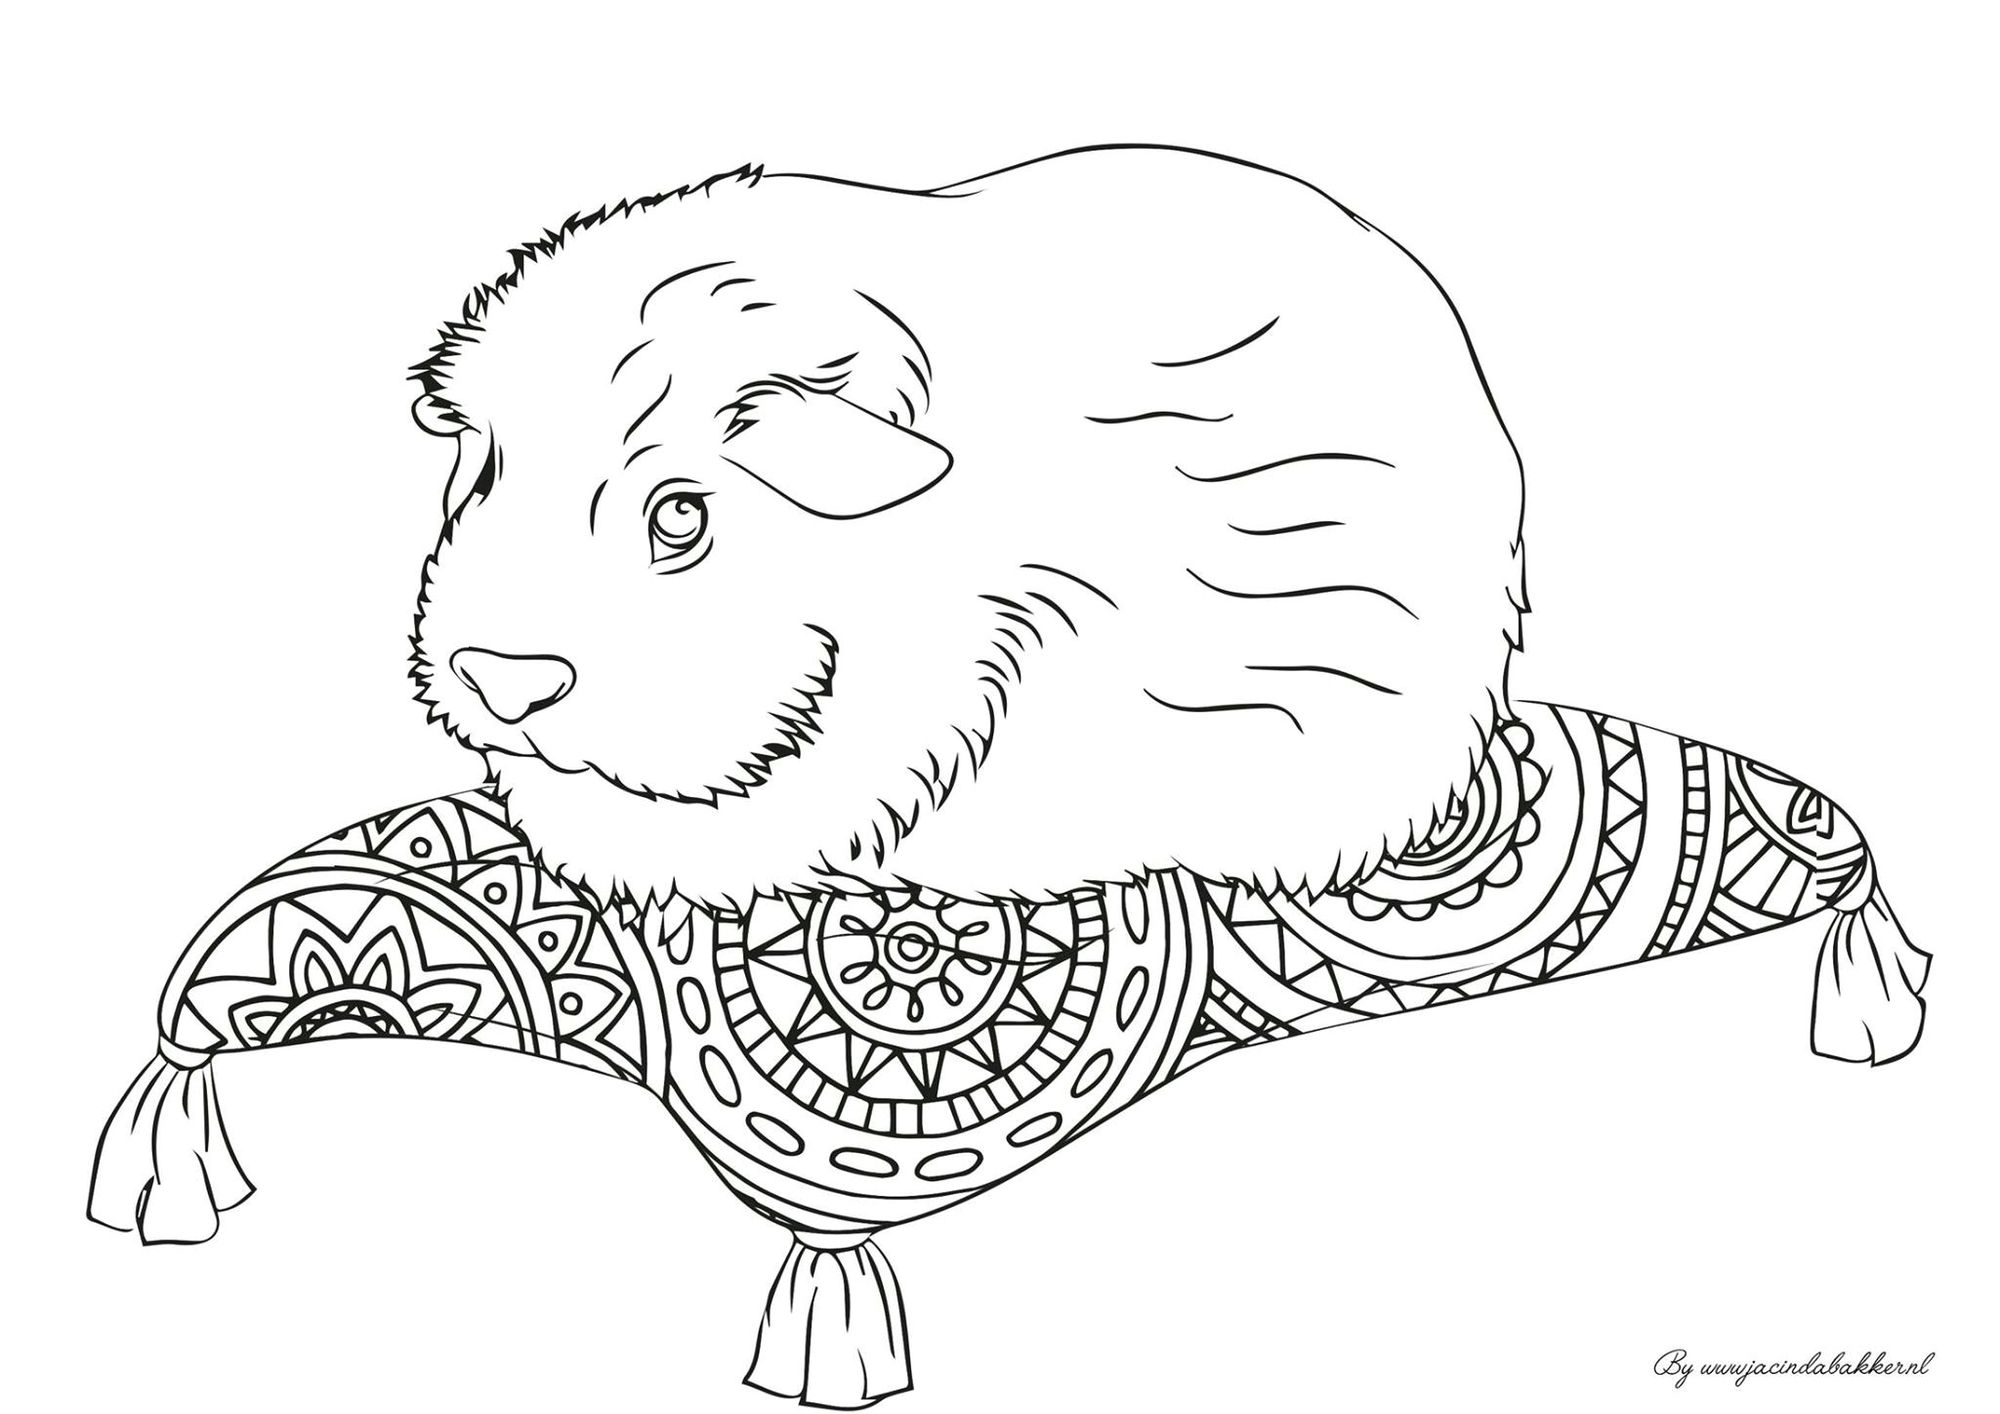 Pin By Anu Hellstrom On Varitettavia Coloring Books Coloring Pages Coloring Pictures